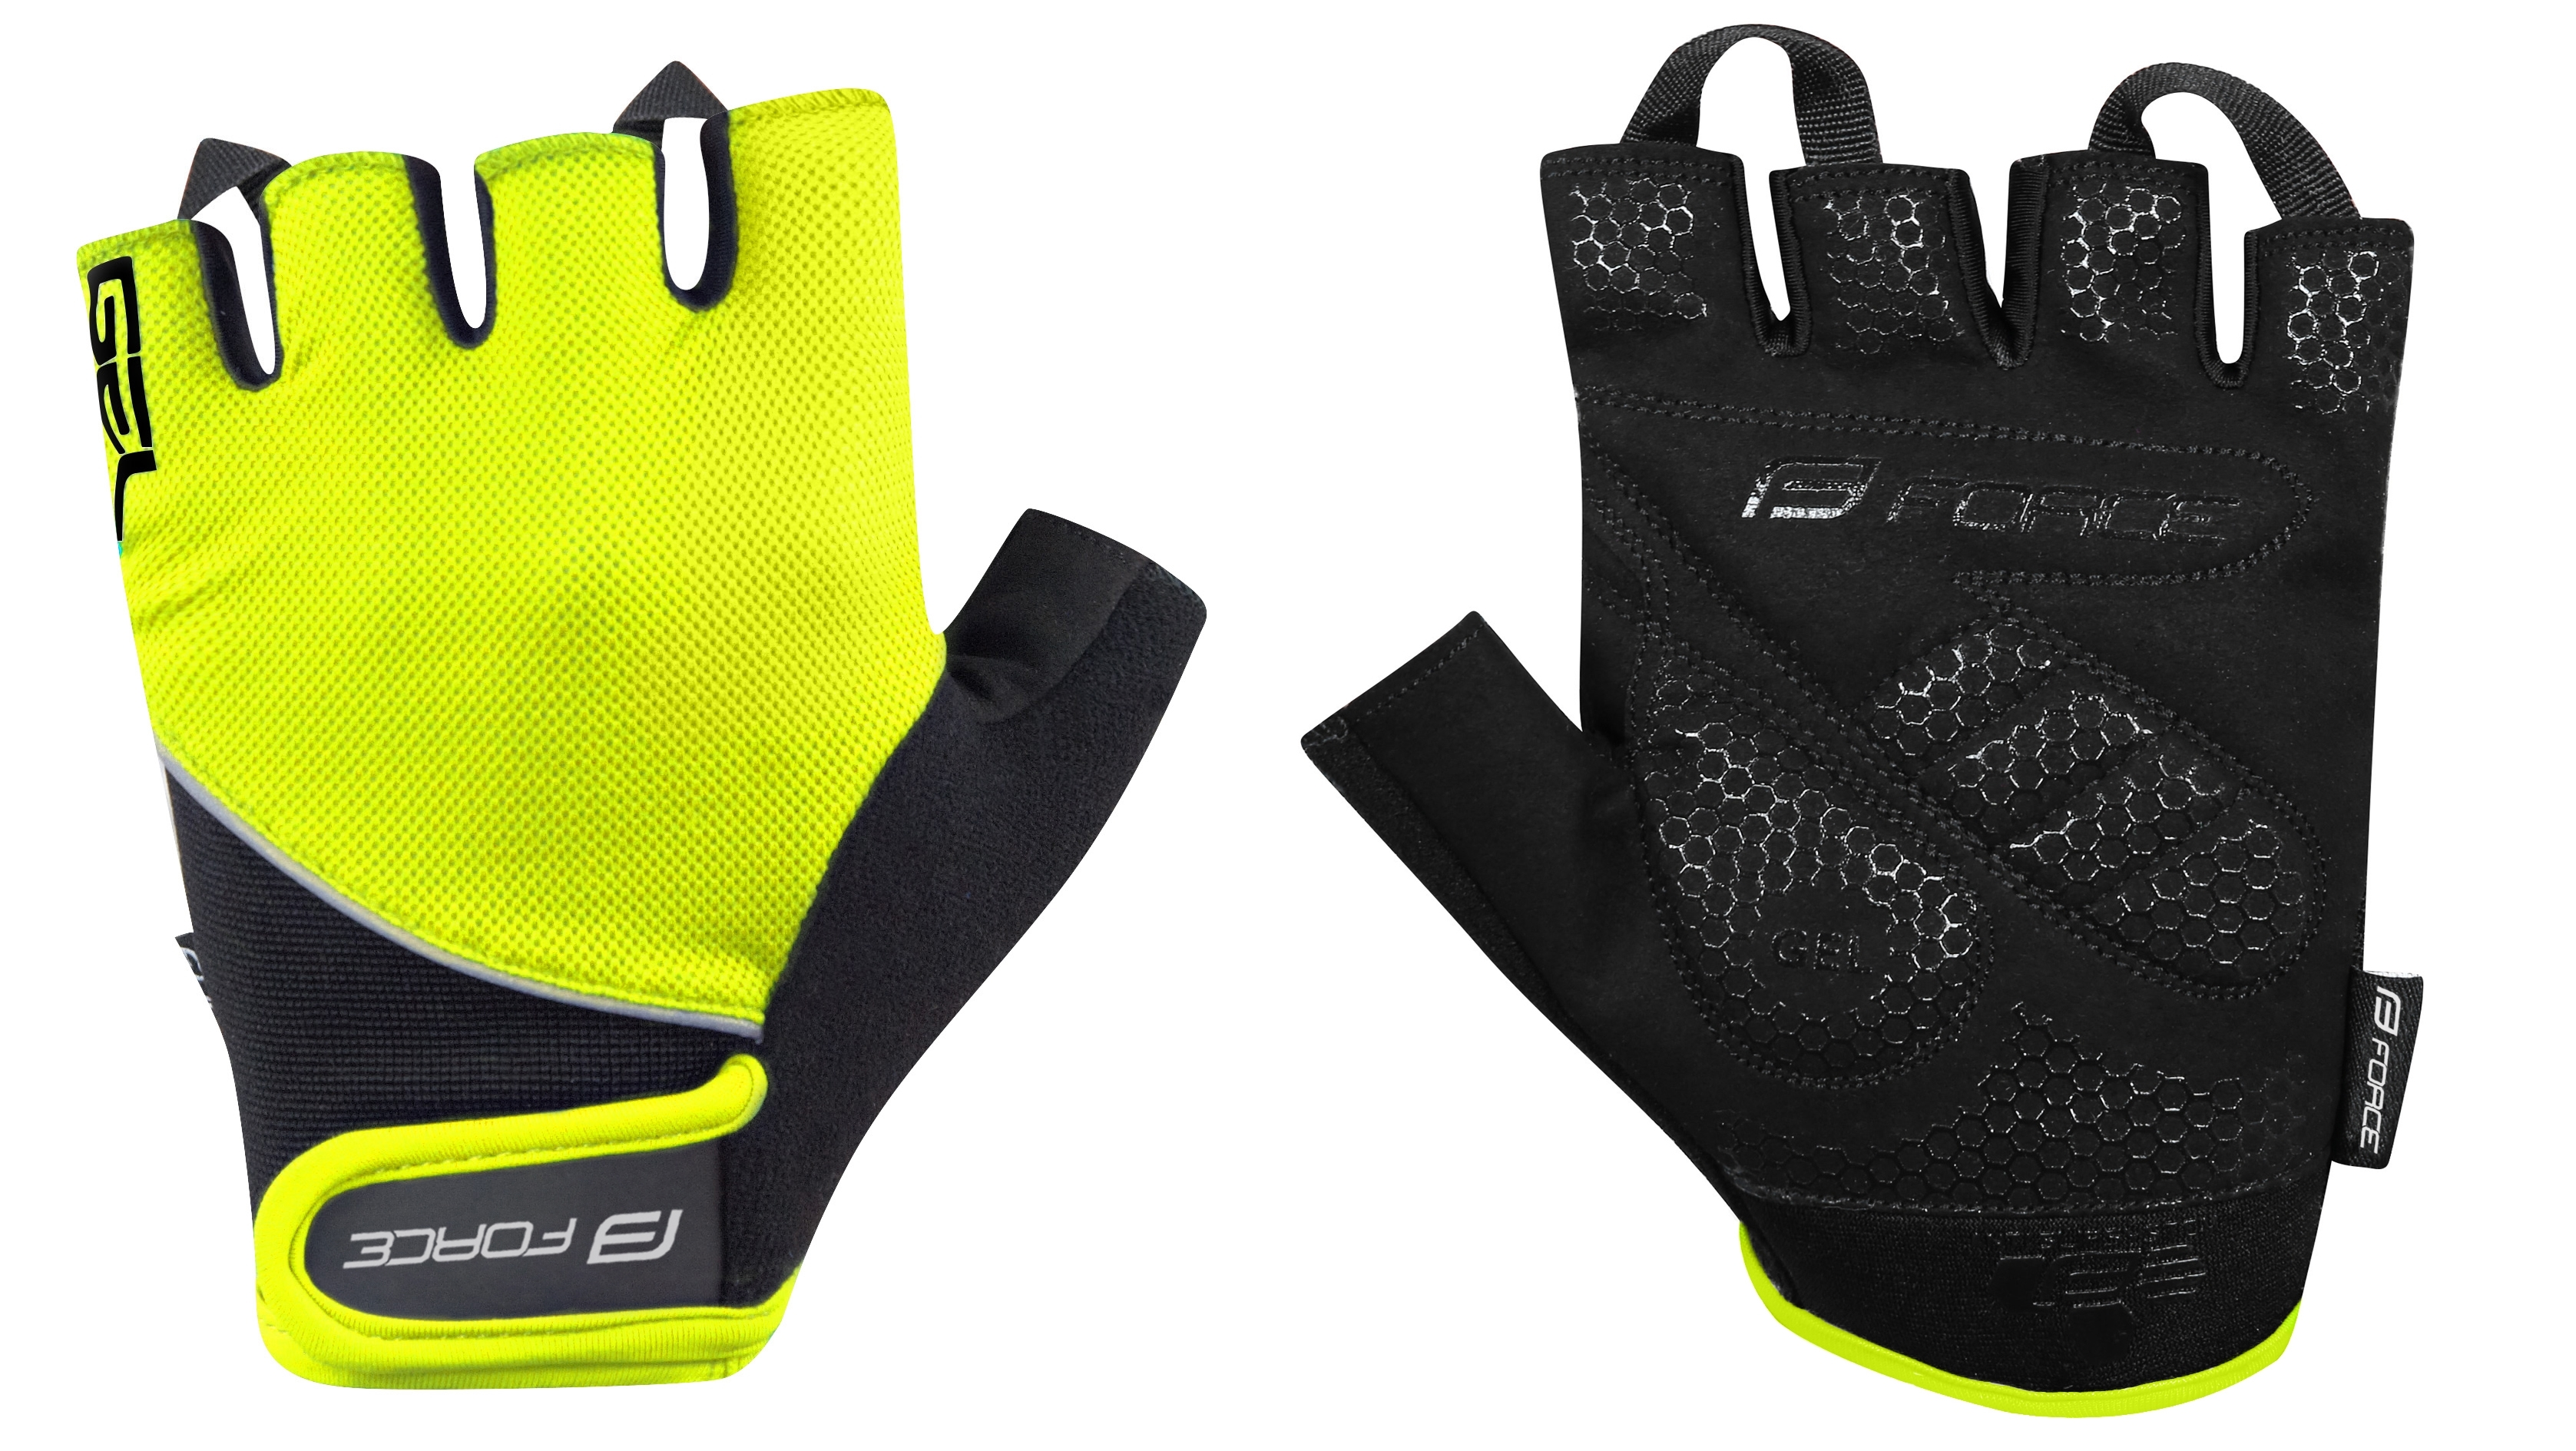 rukavice FORCE GEL 17, fluo M